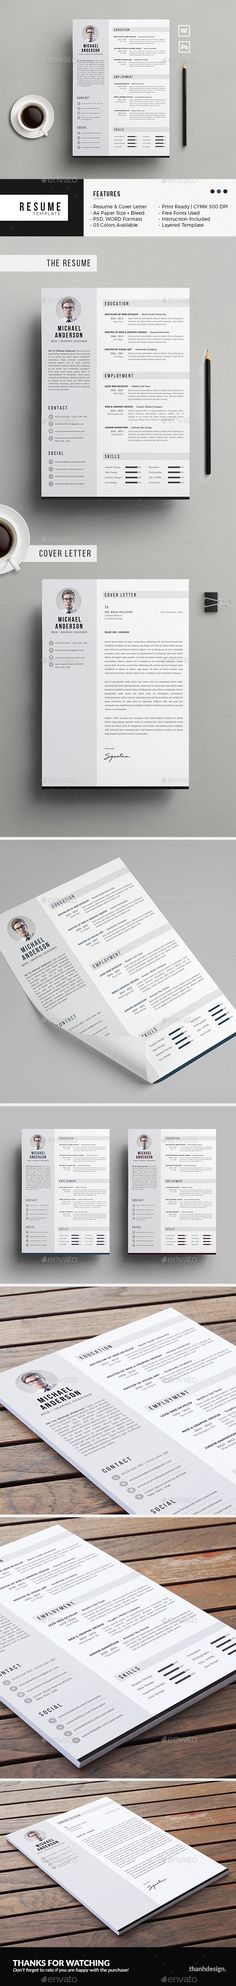 CV Ideas Hire Me Flyer Cv ideas, Marketing flyers and Psd templates - what font for resume